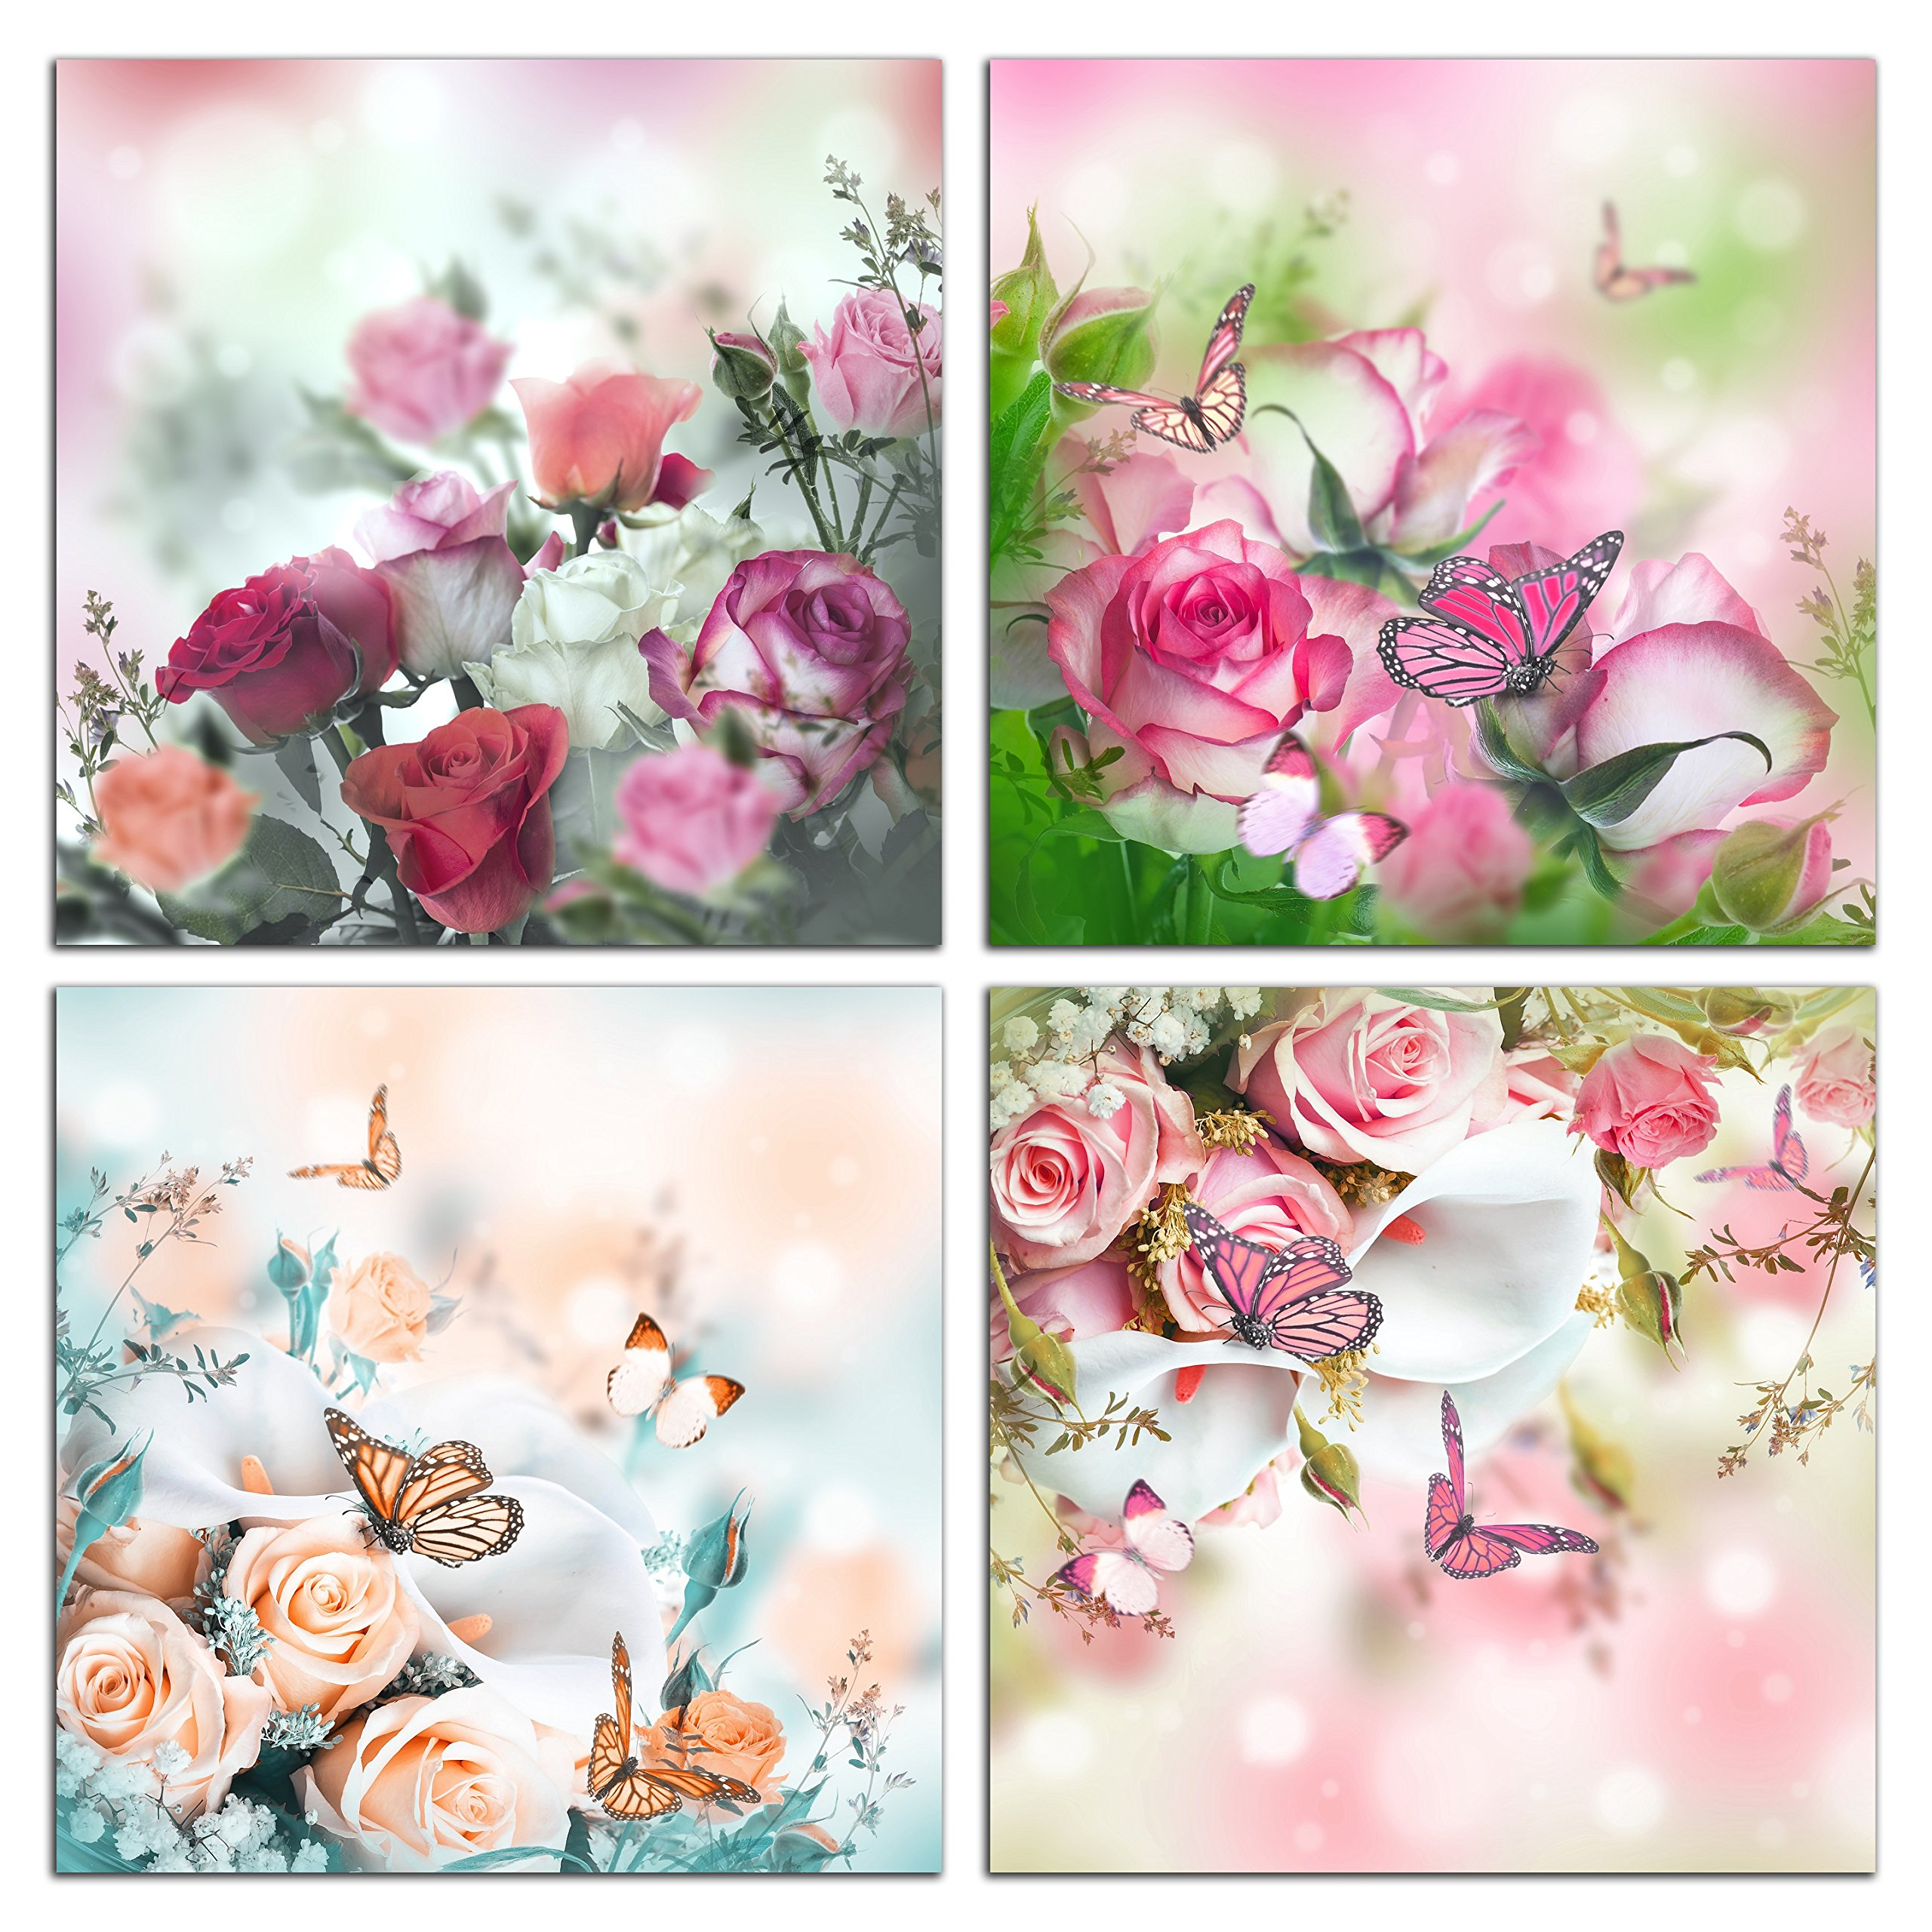 NAN Wind 4 Piece Floral Canvas Wall Art Still Life Rose and butterfly Painting Flower Pictures for Home Decoration Modern Painting Wall Decor Canvas For Gift Piece Ready to Hang